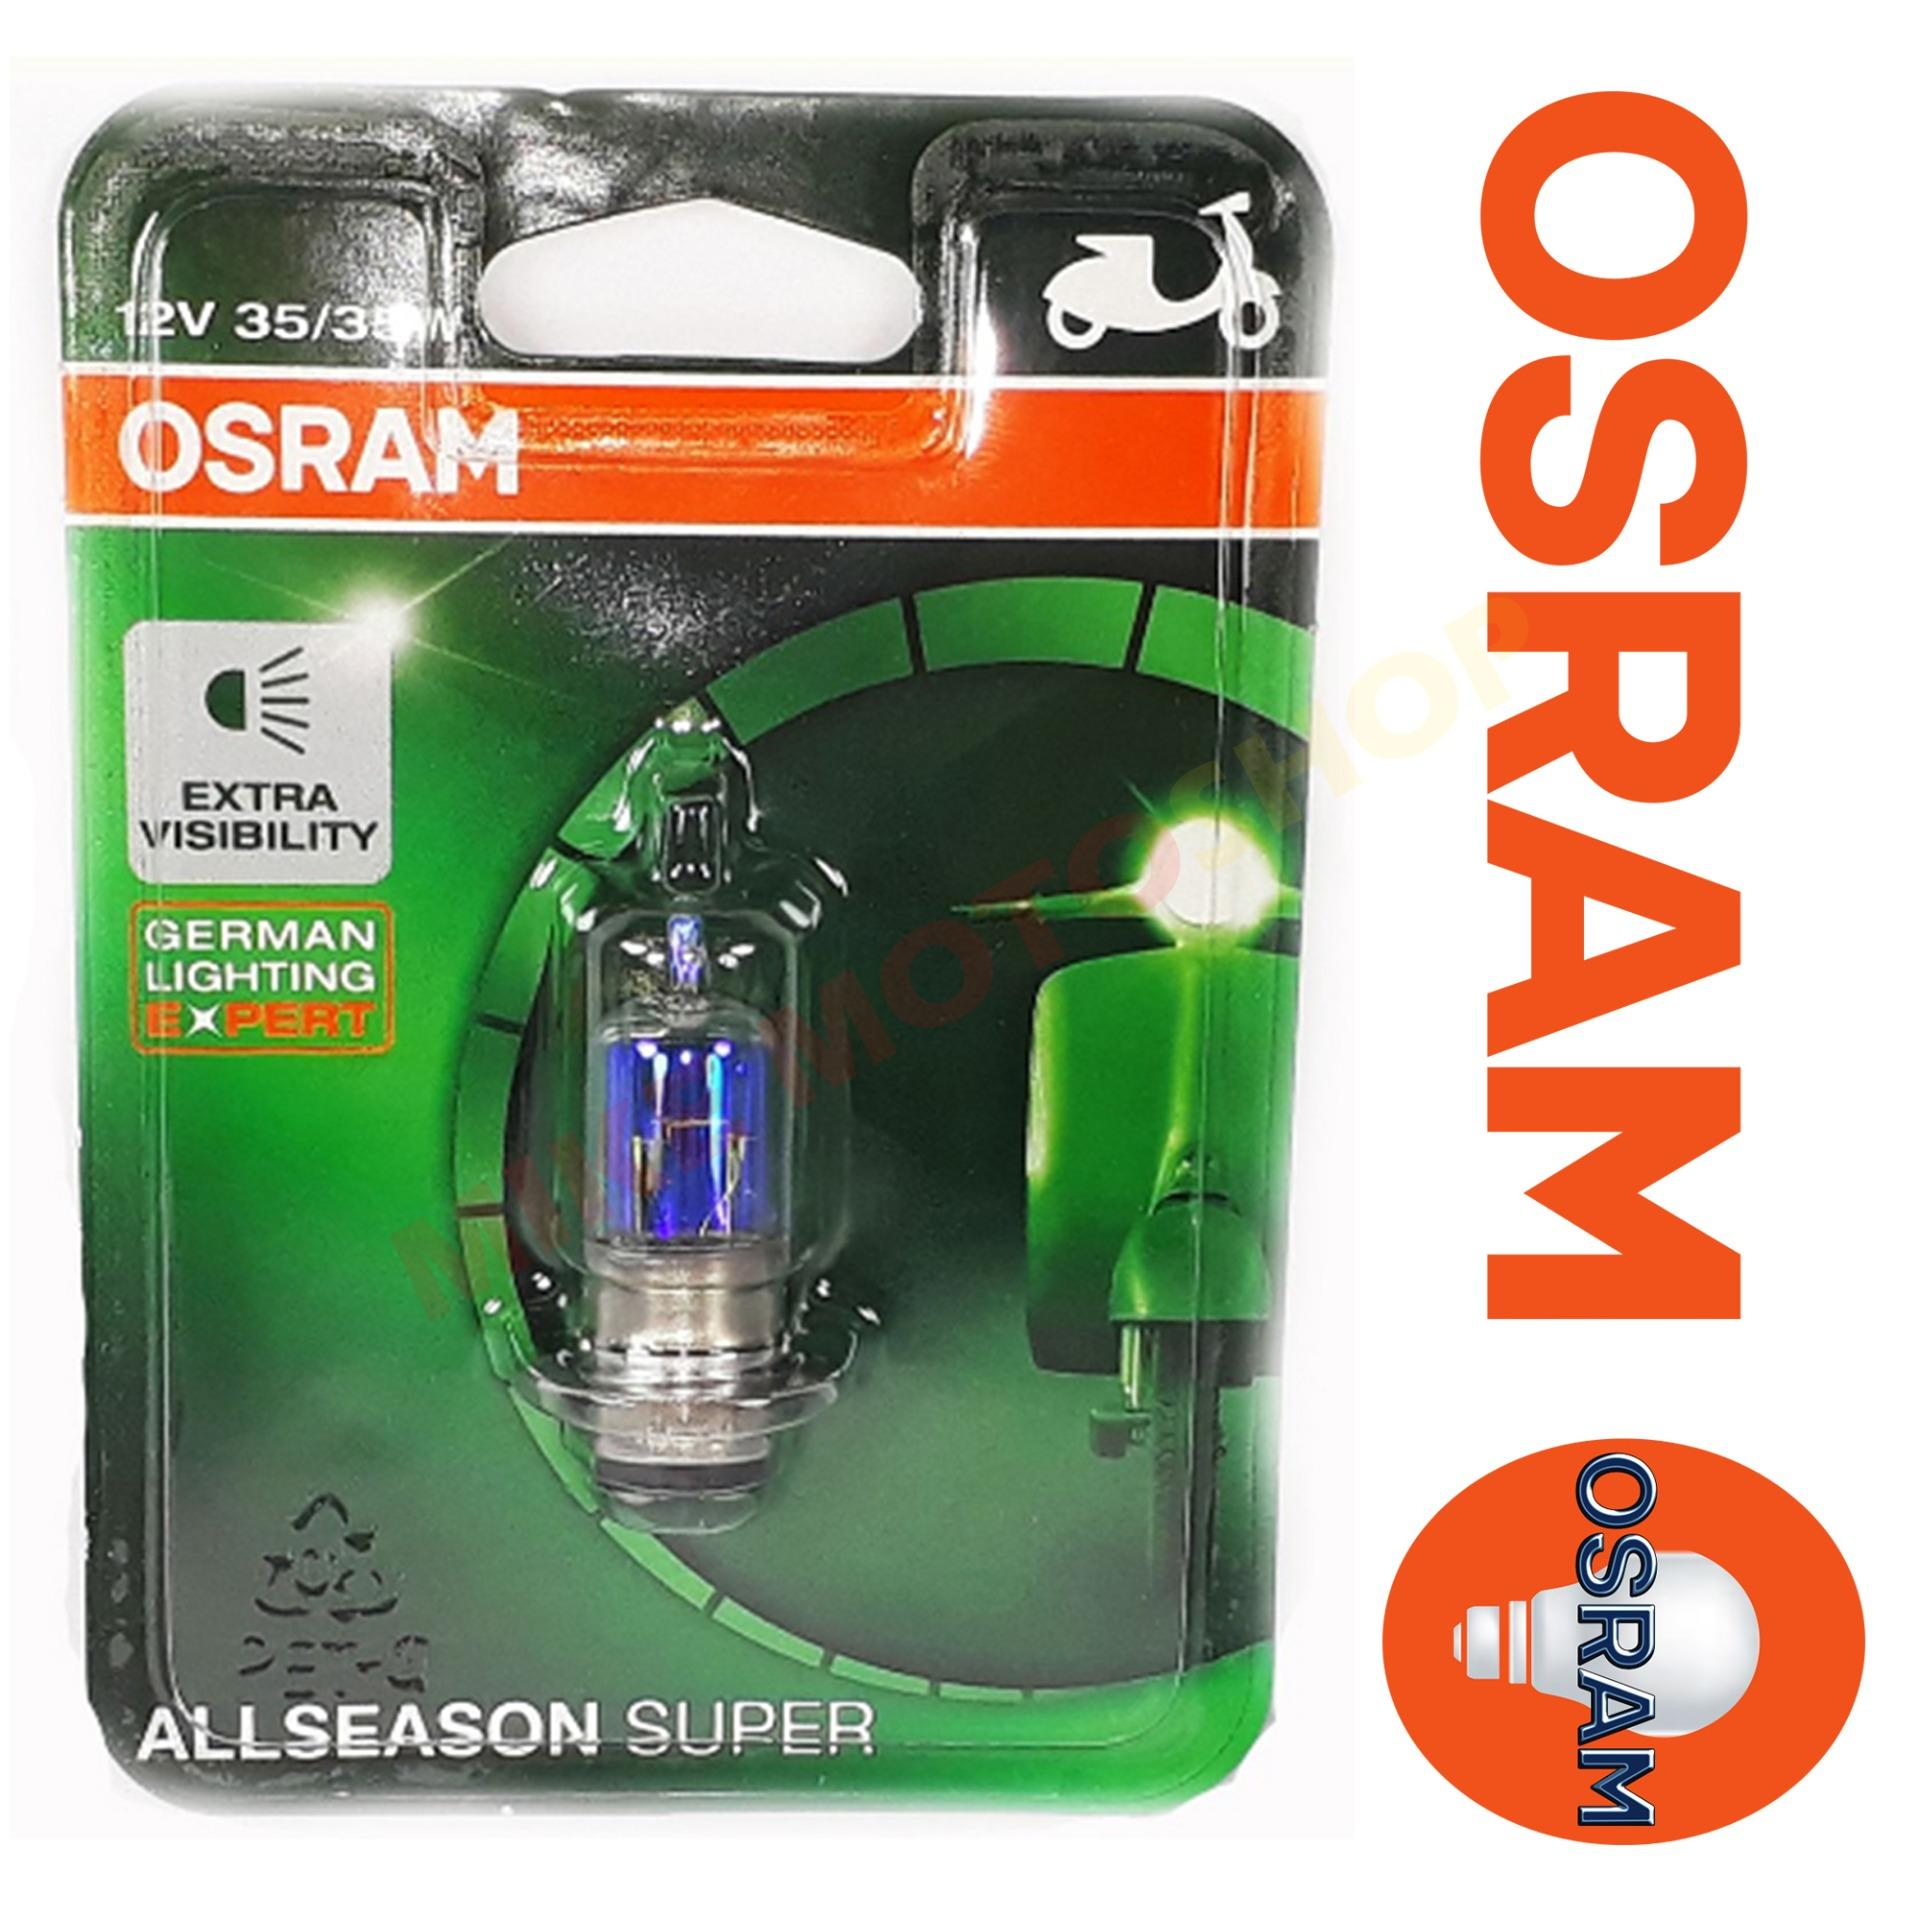 Motorcycle Led Bulbs For Sale Drivetrain Lights Online Brands Sixled Bar Power Indicator Red Page102 Osram All Season Super 1 Leg 12v 35 35w